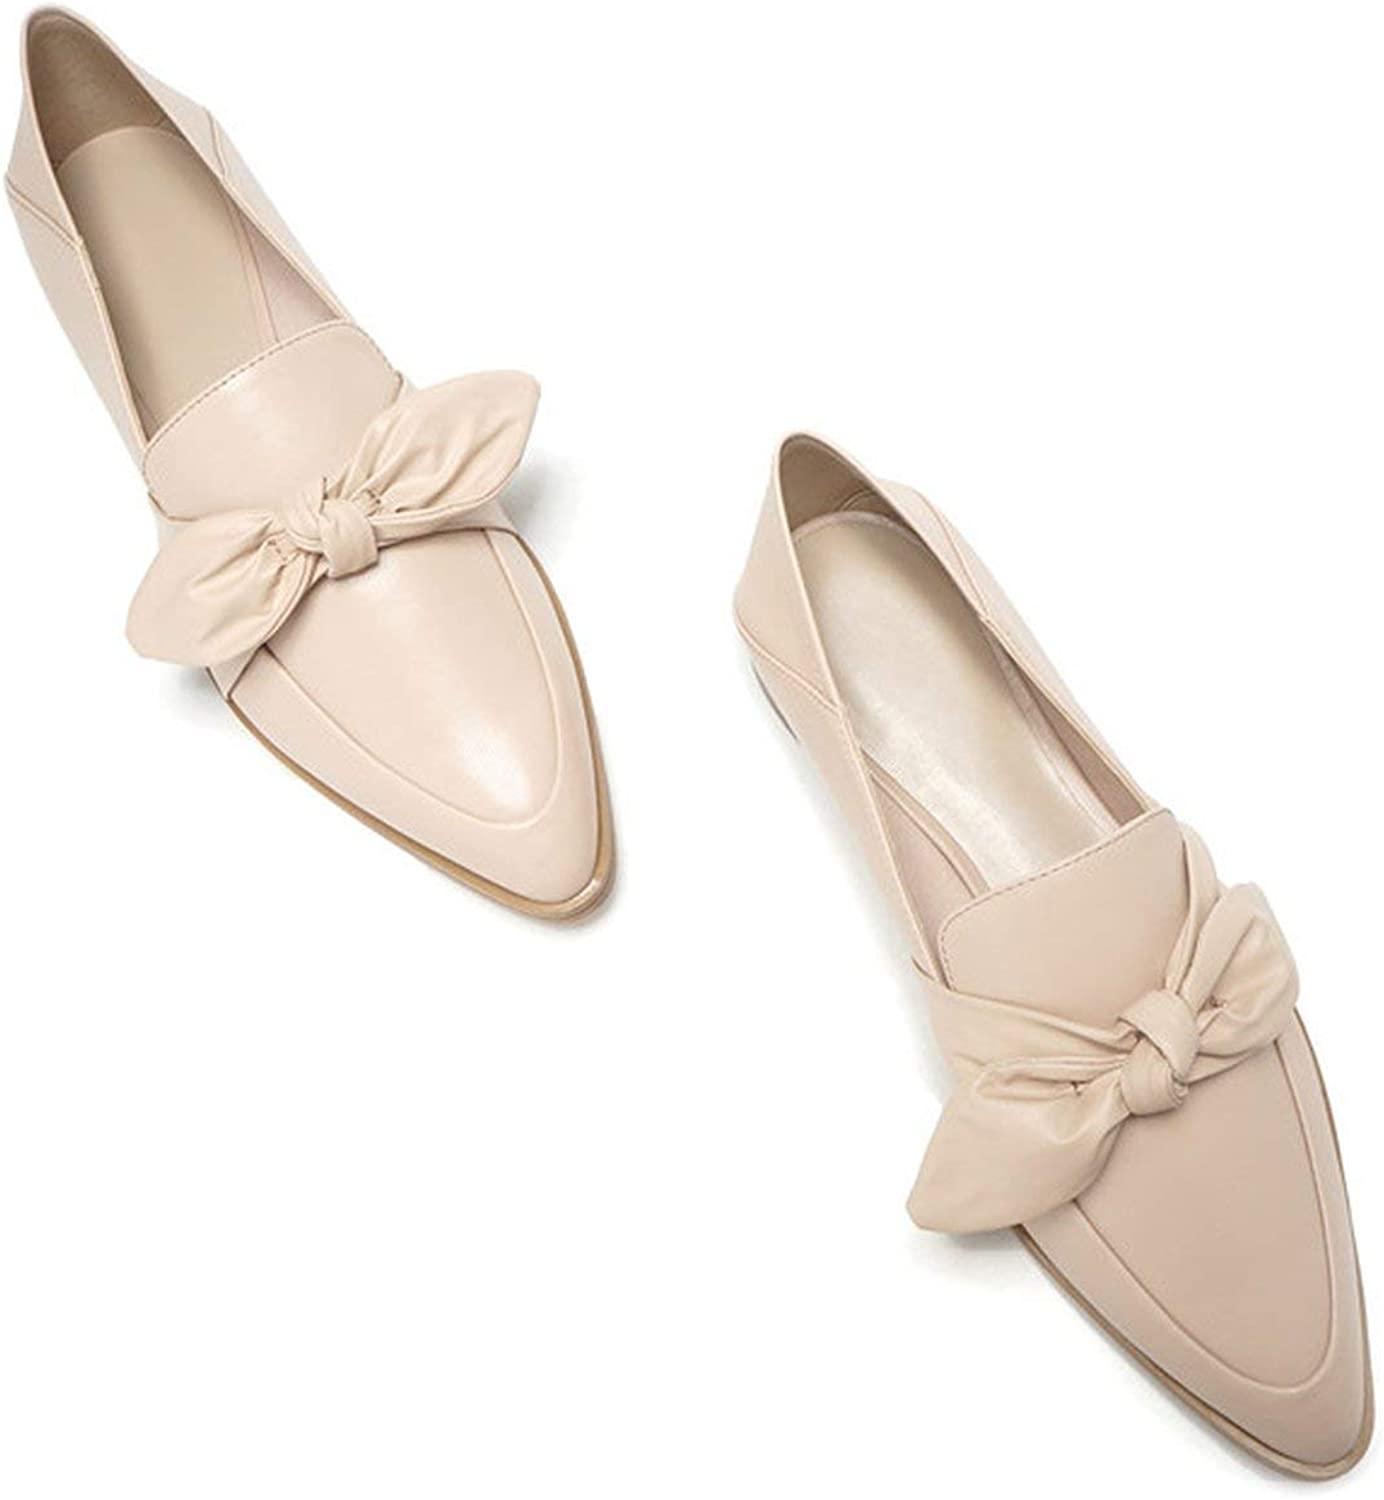 White Island Women Casual shoes Beige Flats PU Leather Women shoes Slip On Bow Loafers Women Flats Fashion Comfortable Pointed shoes K-169,Beige,9